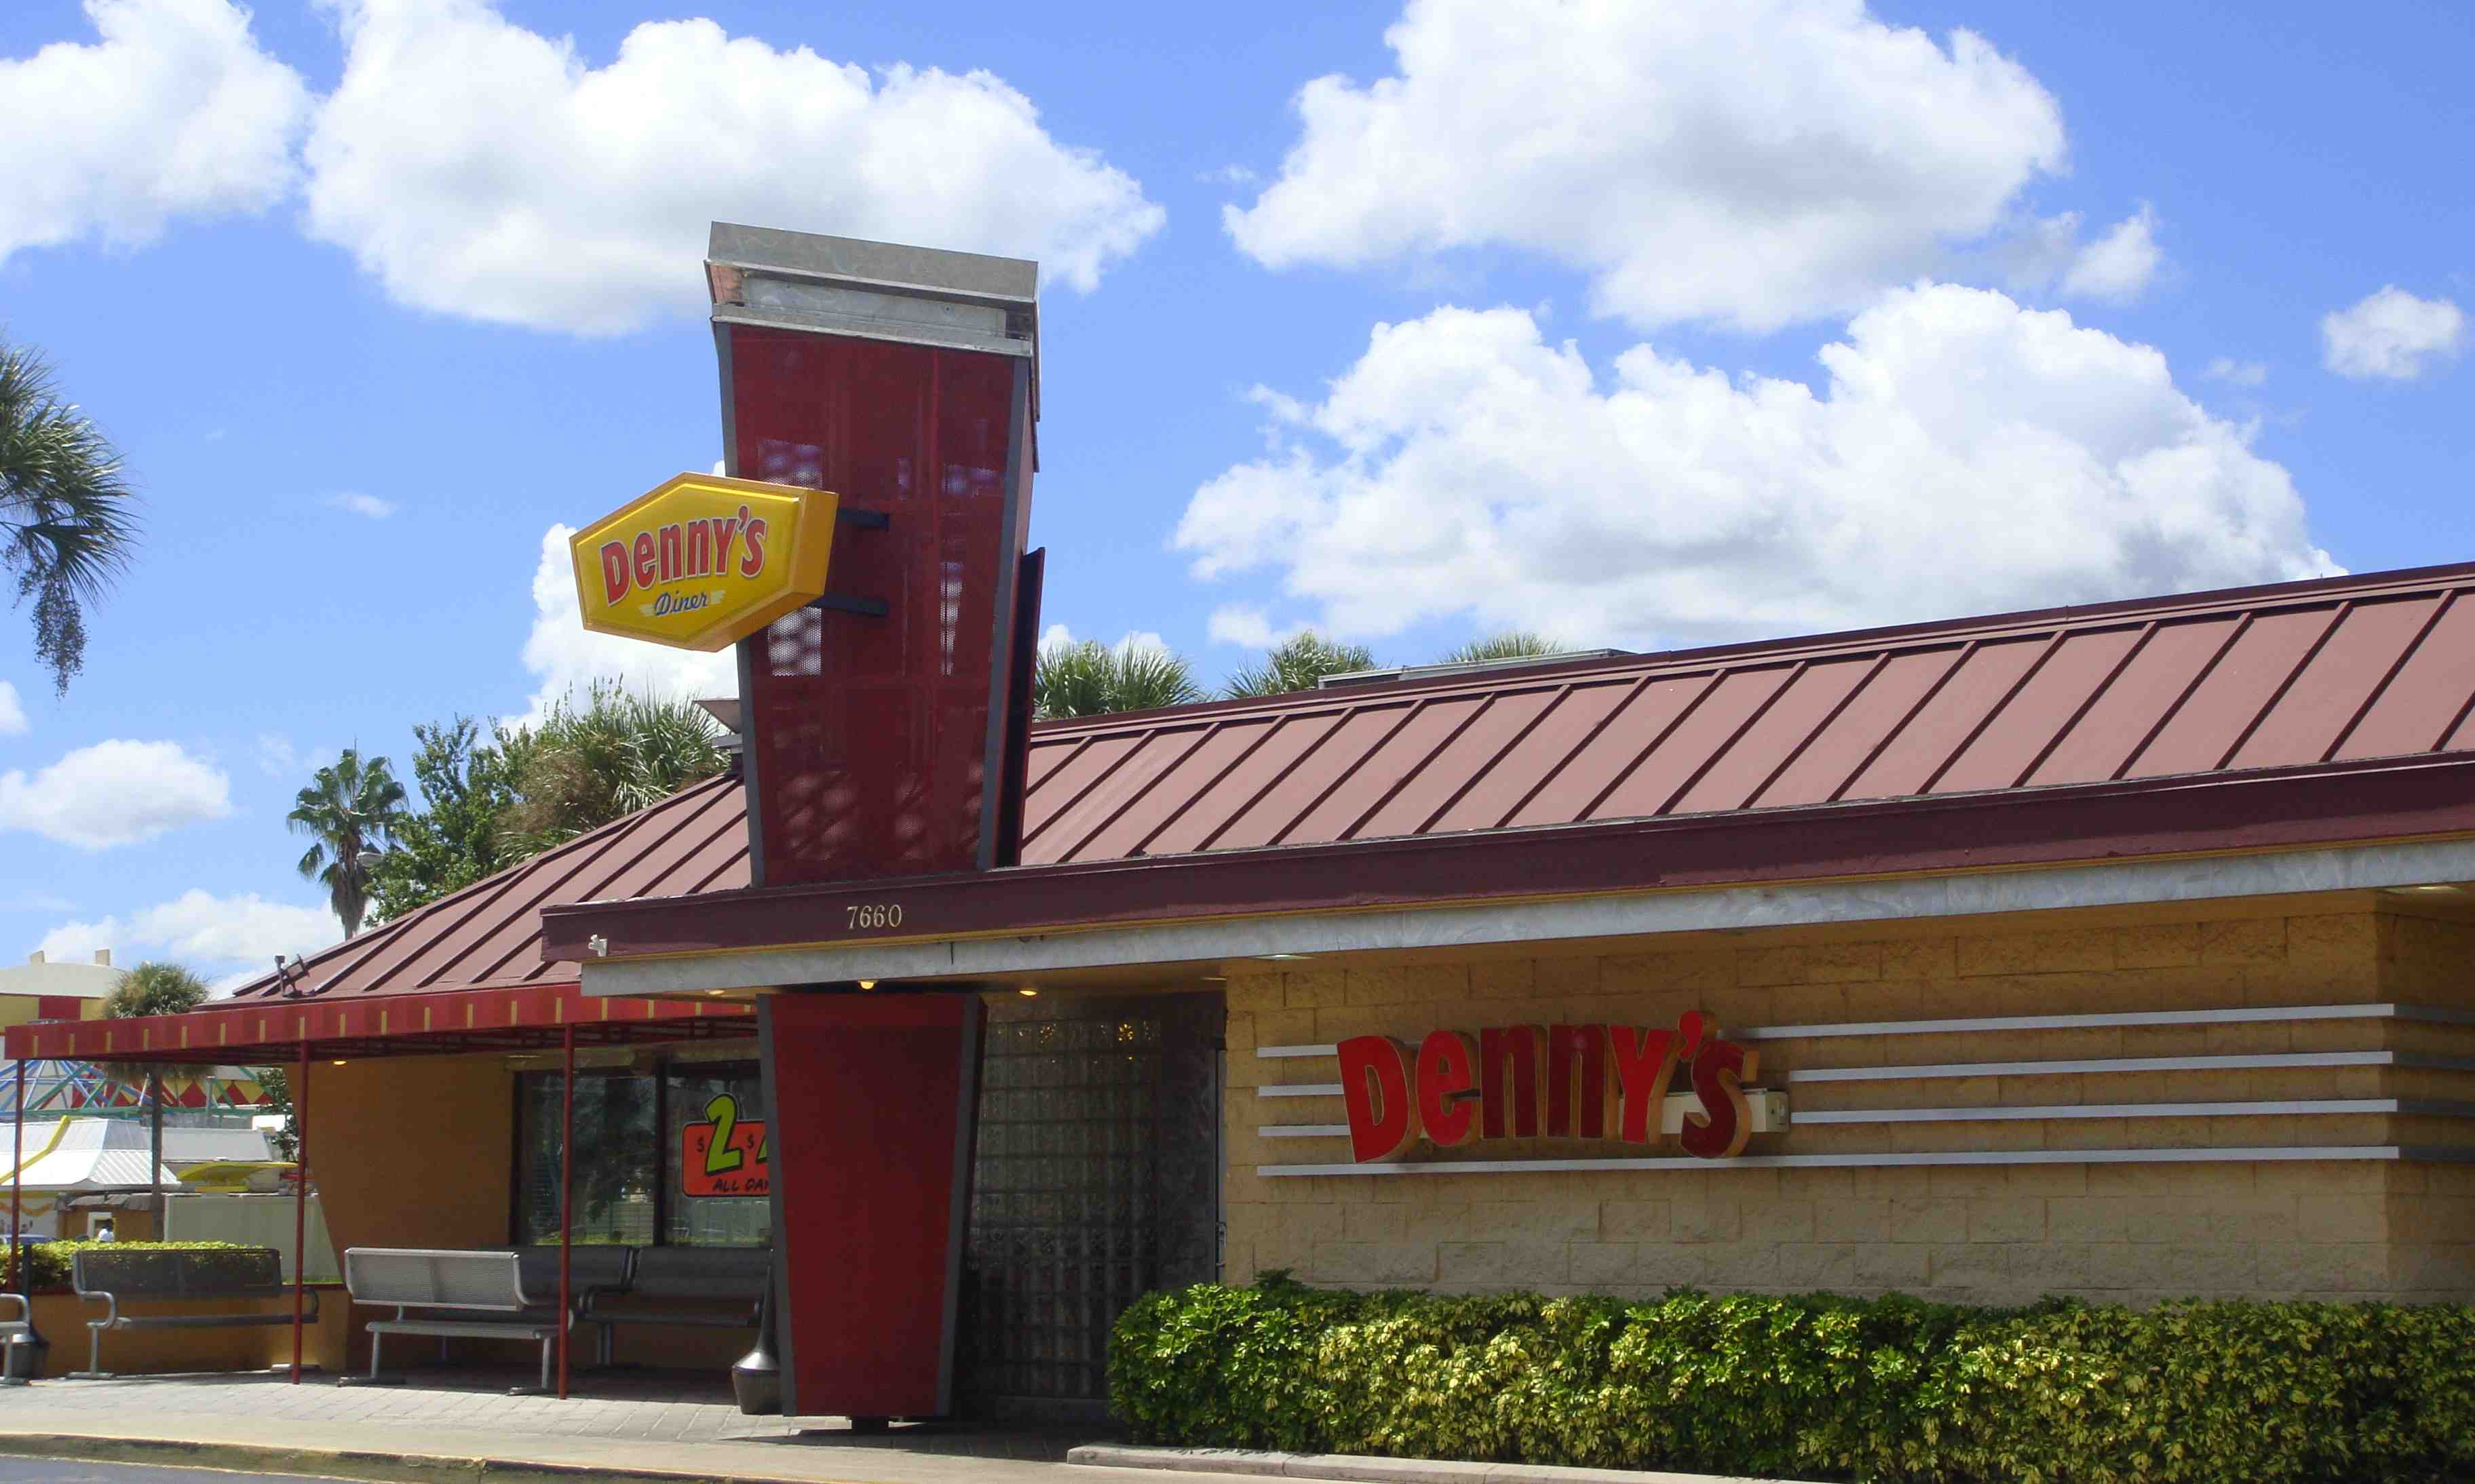 Oct 30, · Reserve a table at Denny's, Orlando on TripAdvisor: See unbiased reviews of Denny's, rated 4 of 5 on TripAdvisor and ranked # of 3, restaurants in Orlando.4/4().